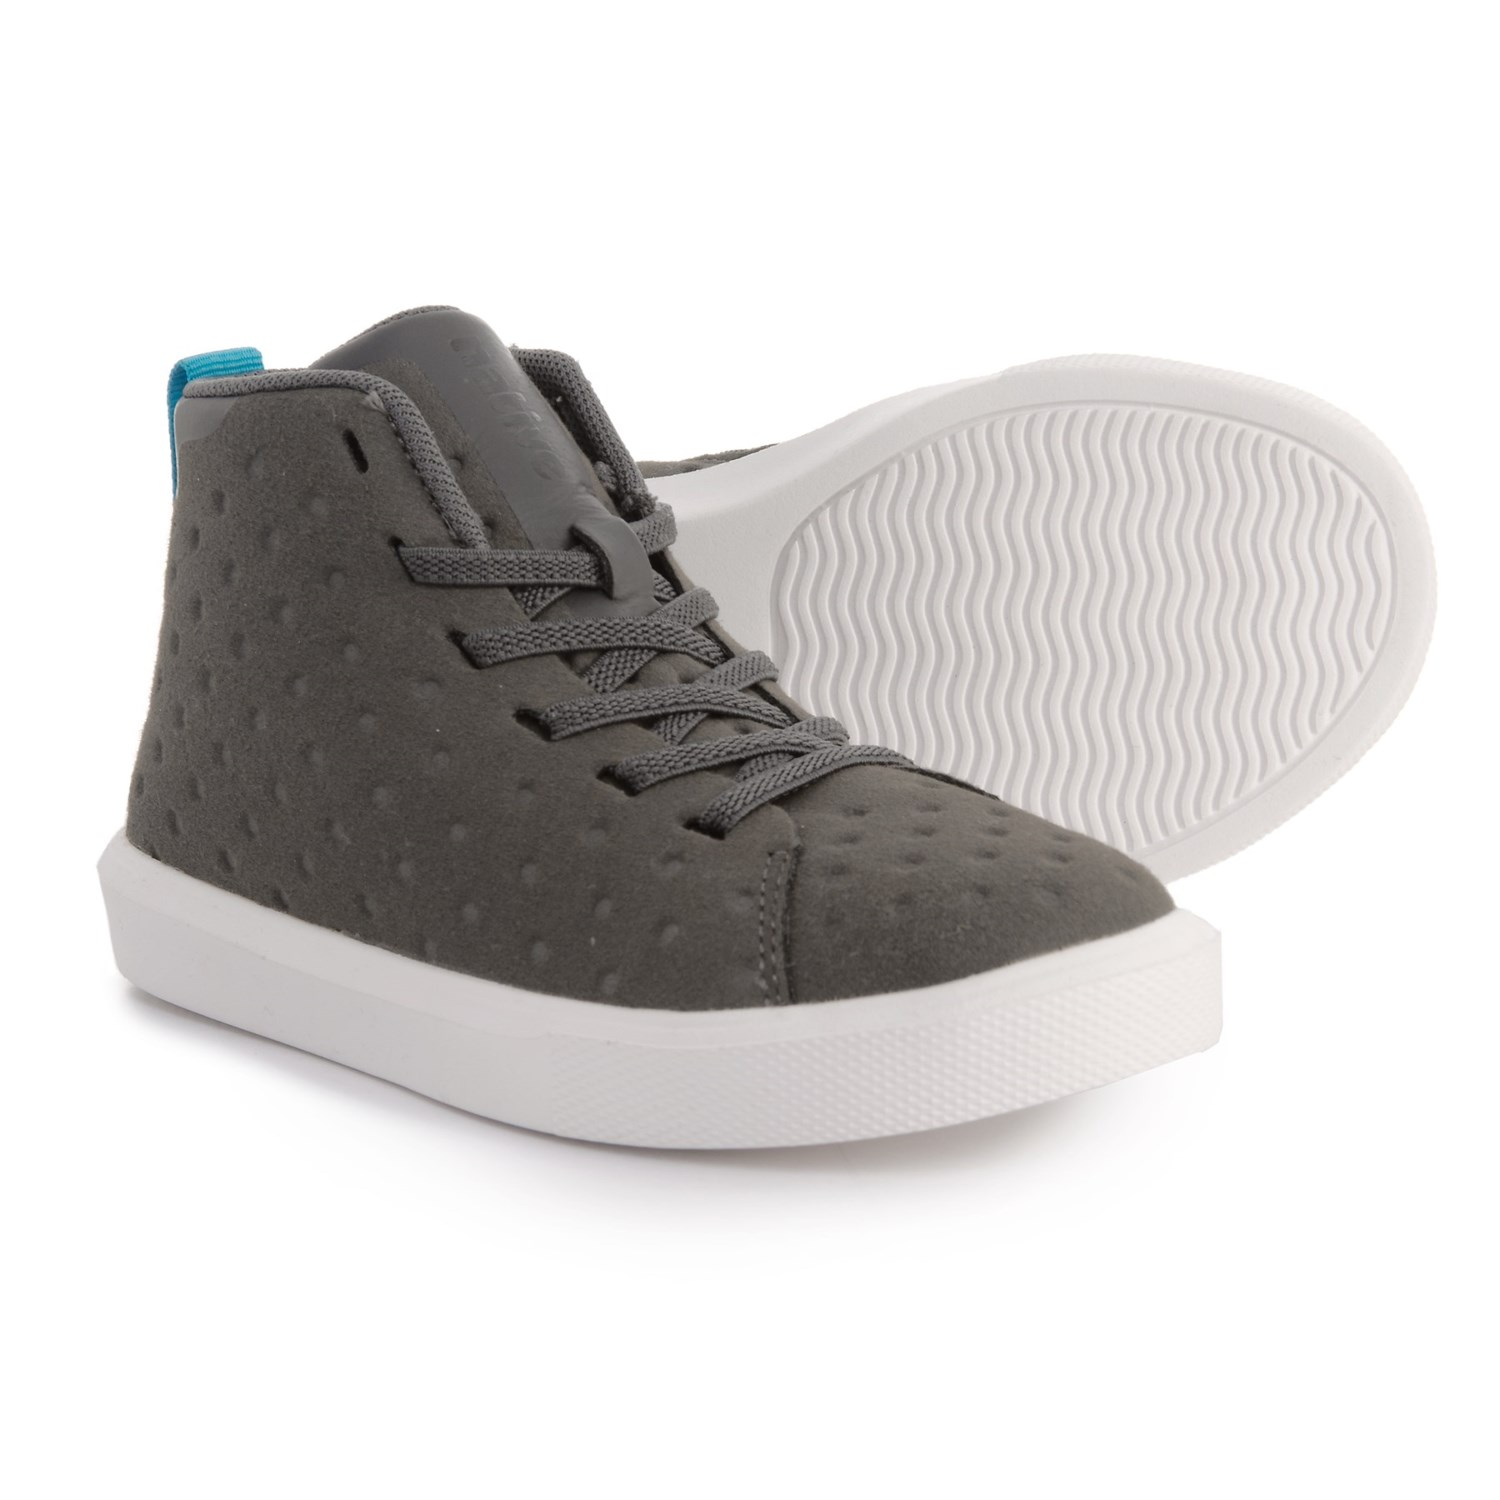 f448df580a7d Native Shoes Monaco Mid Sneakers - Side Zip (For Boys)